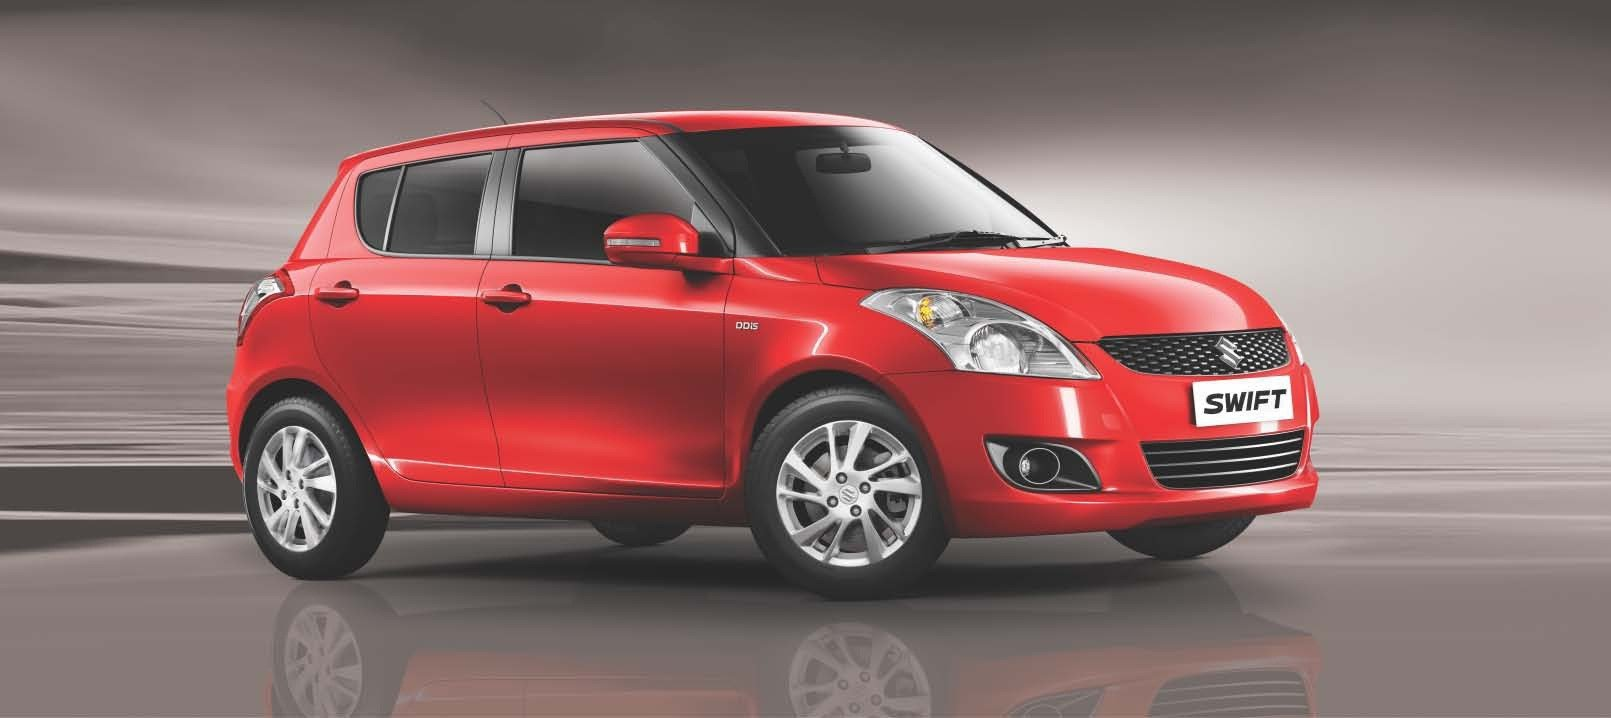 Latest New Maruti Suzuki Swift Exterior Red Color Right Side View Free Download